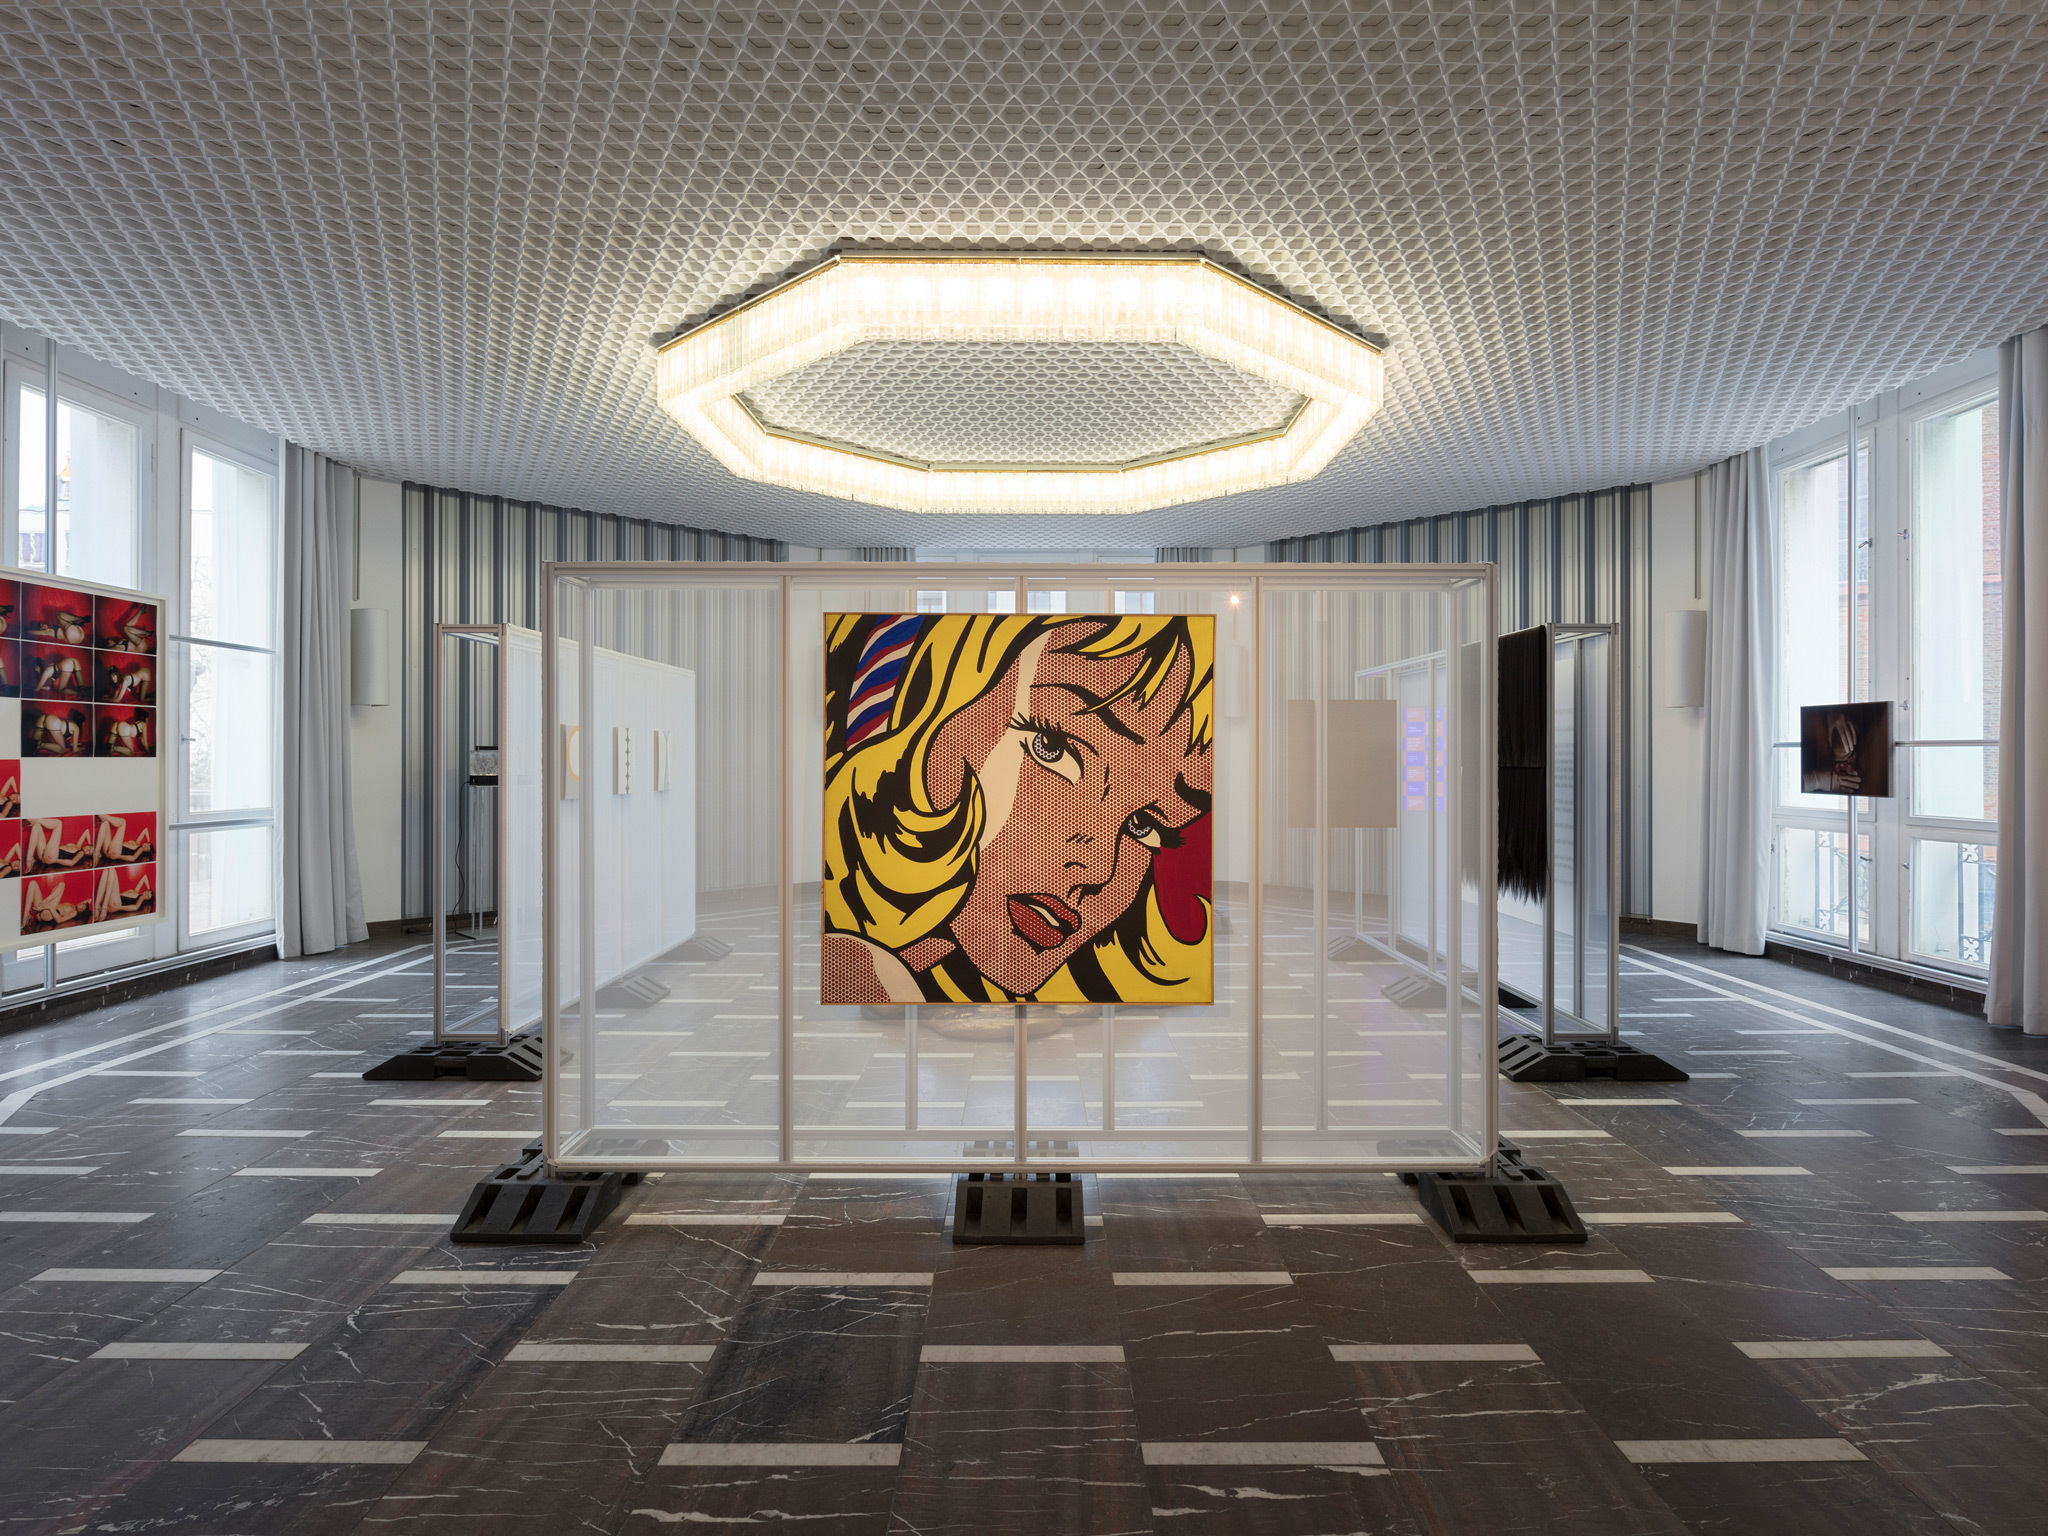 Artwork on display at the Schinkel Pavillon gallery in Berlin